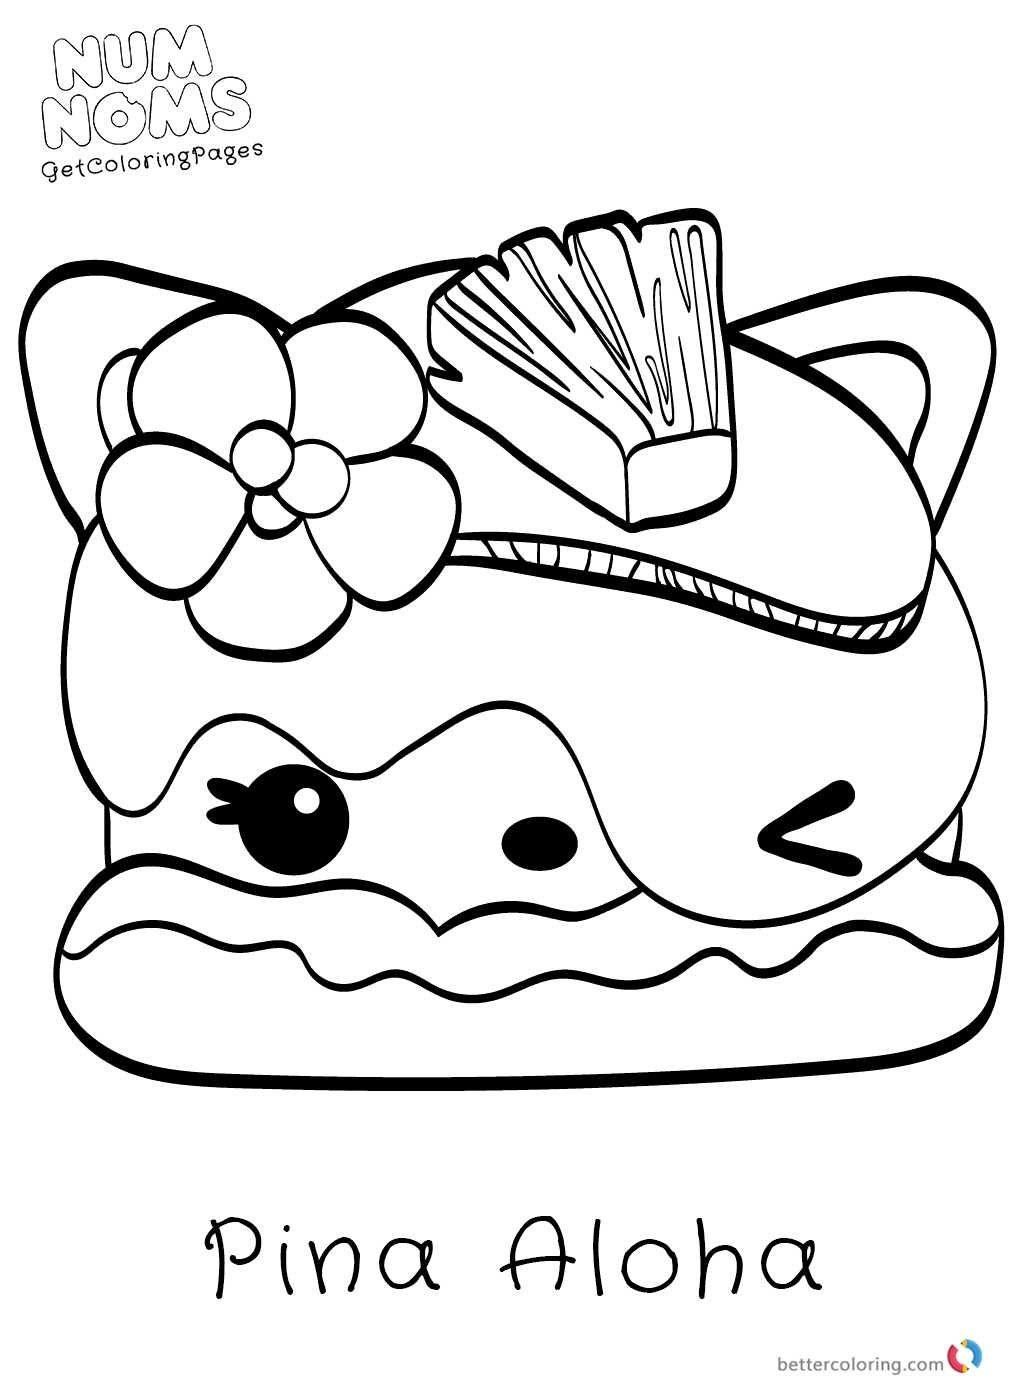 10 Coloring Page Num Noms Cute Coloring Pages Cool Coloring Pages Coloring Books